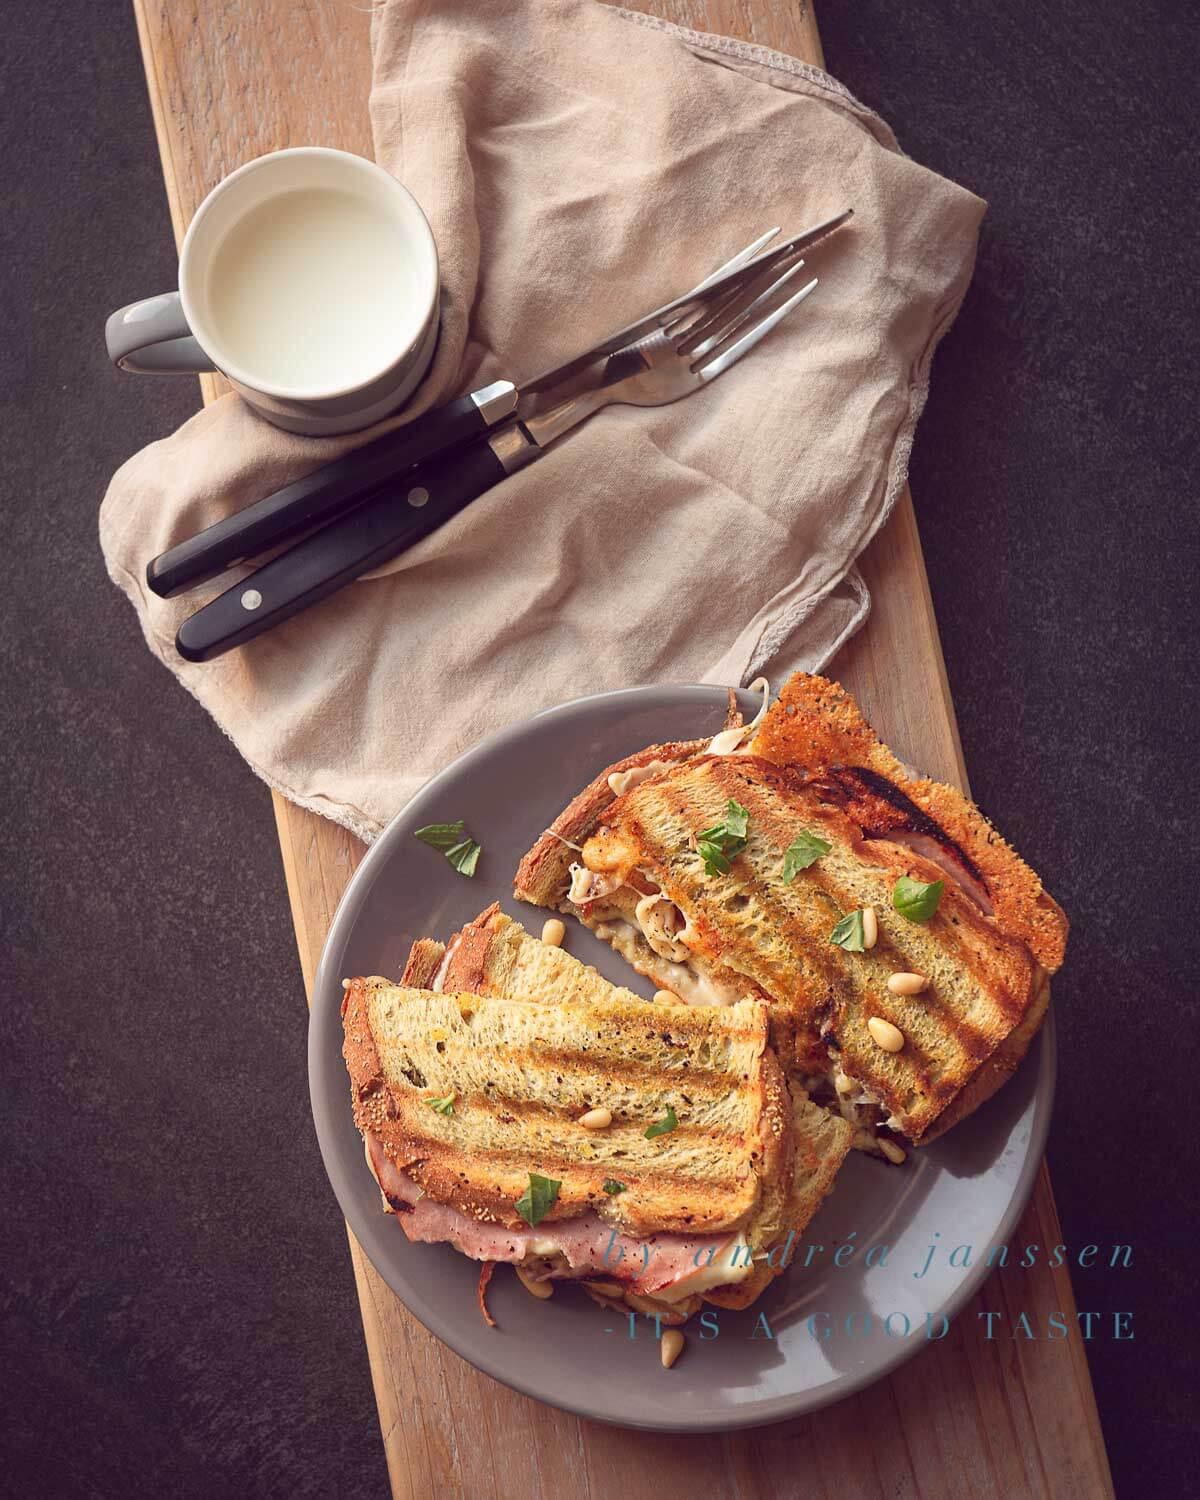 Grilled cheese sandwich with pesto